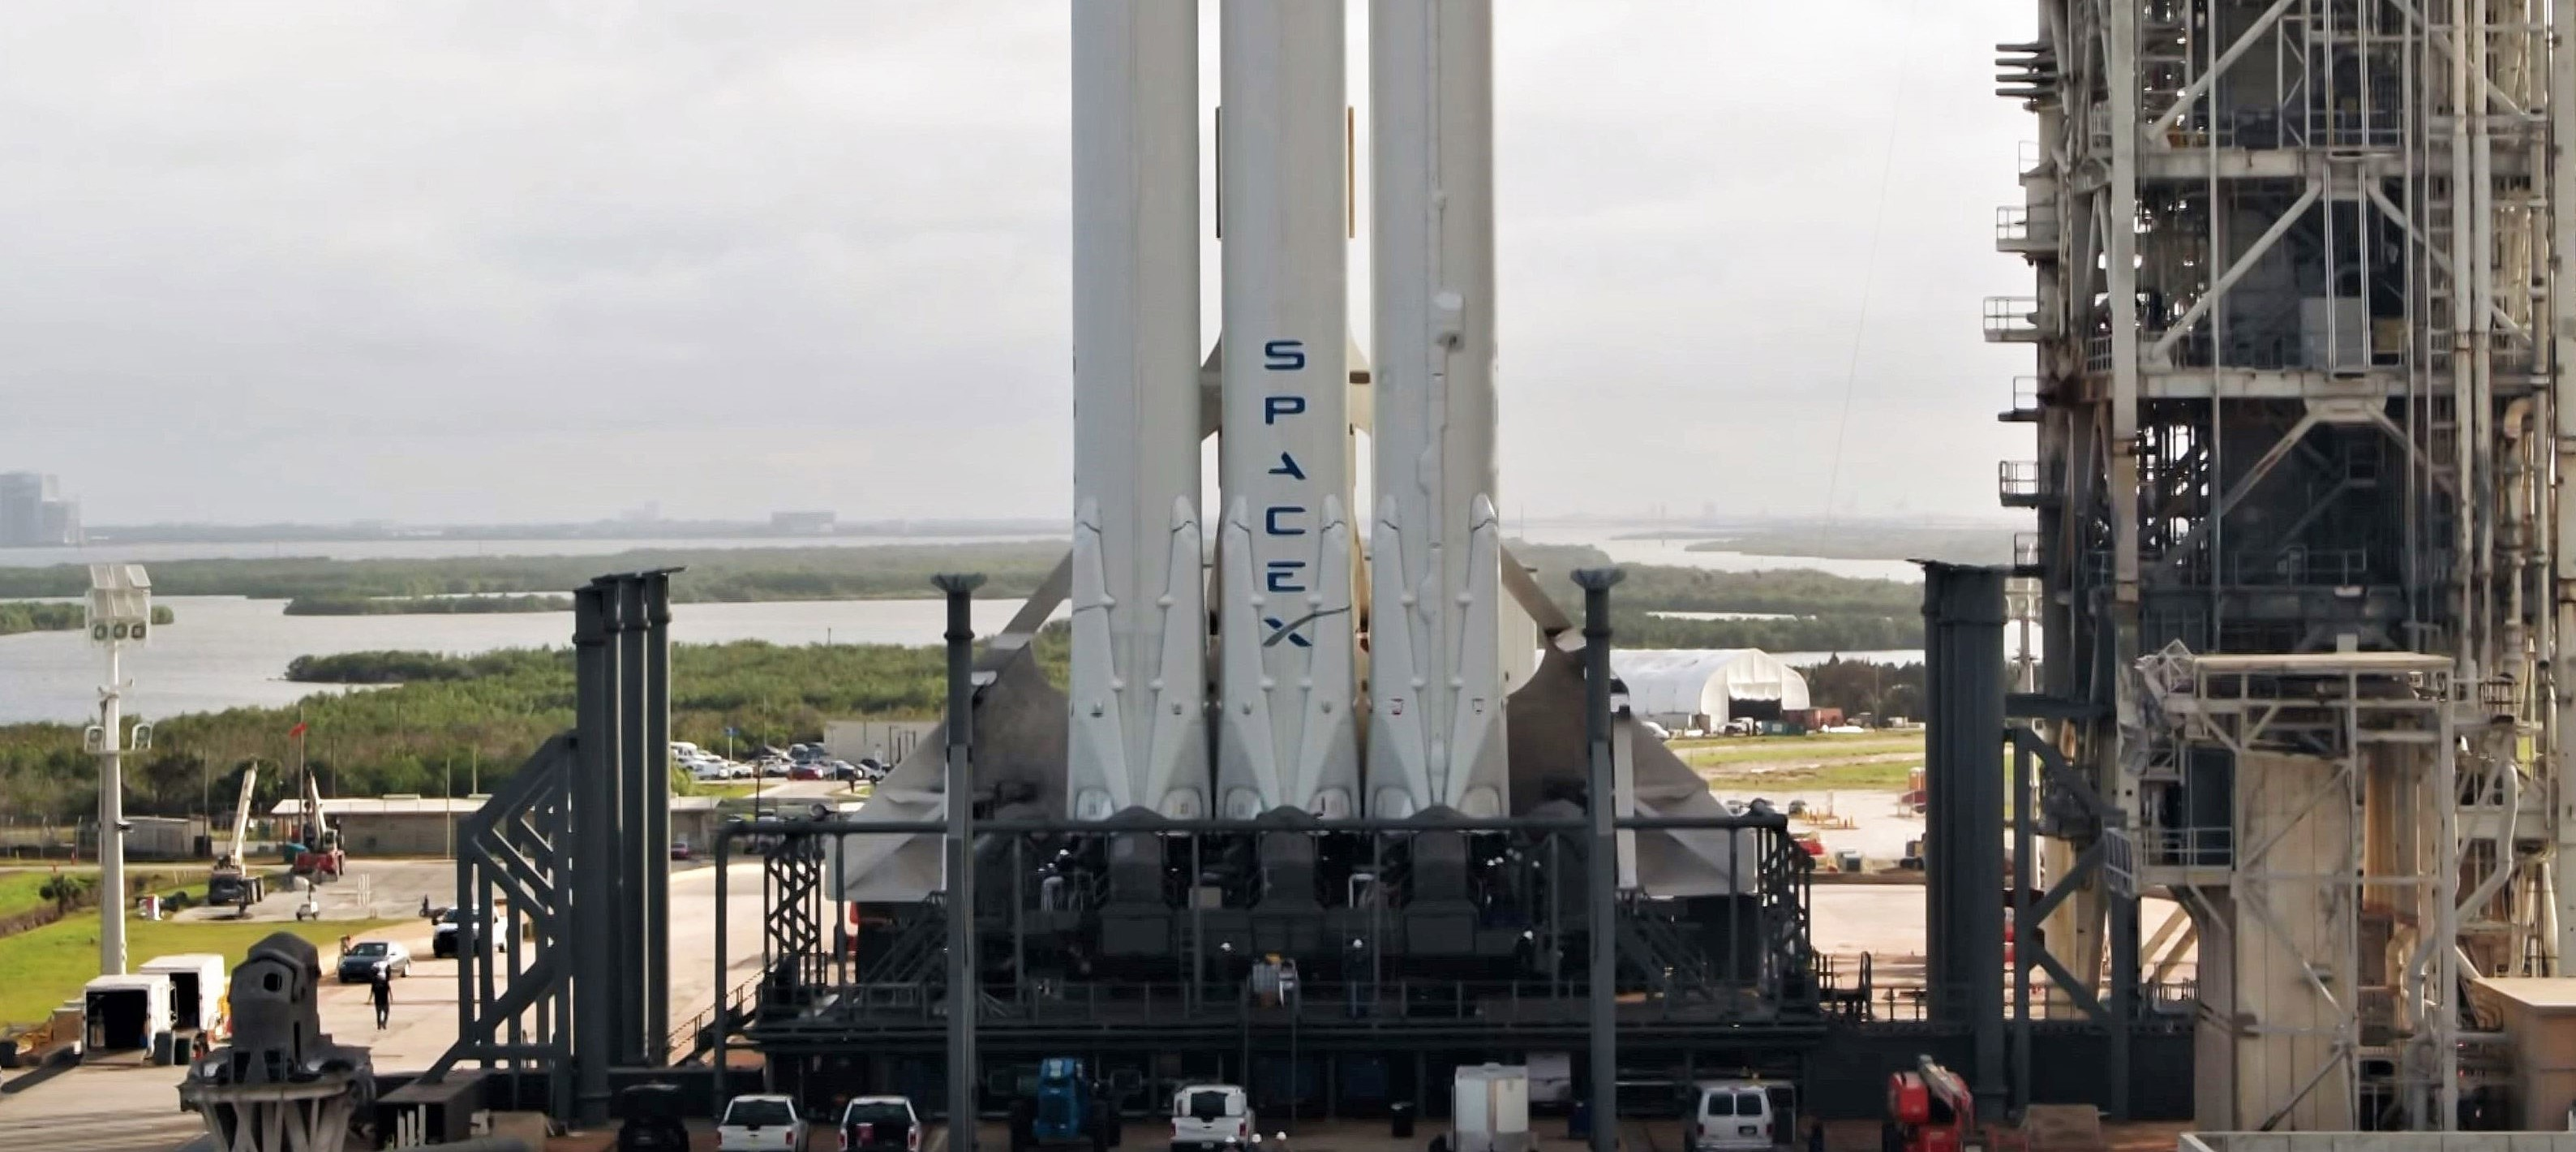 Falcon Heavy (SpaceX) 32 crop